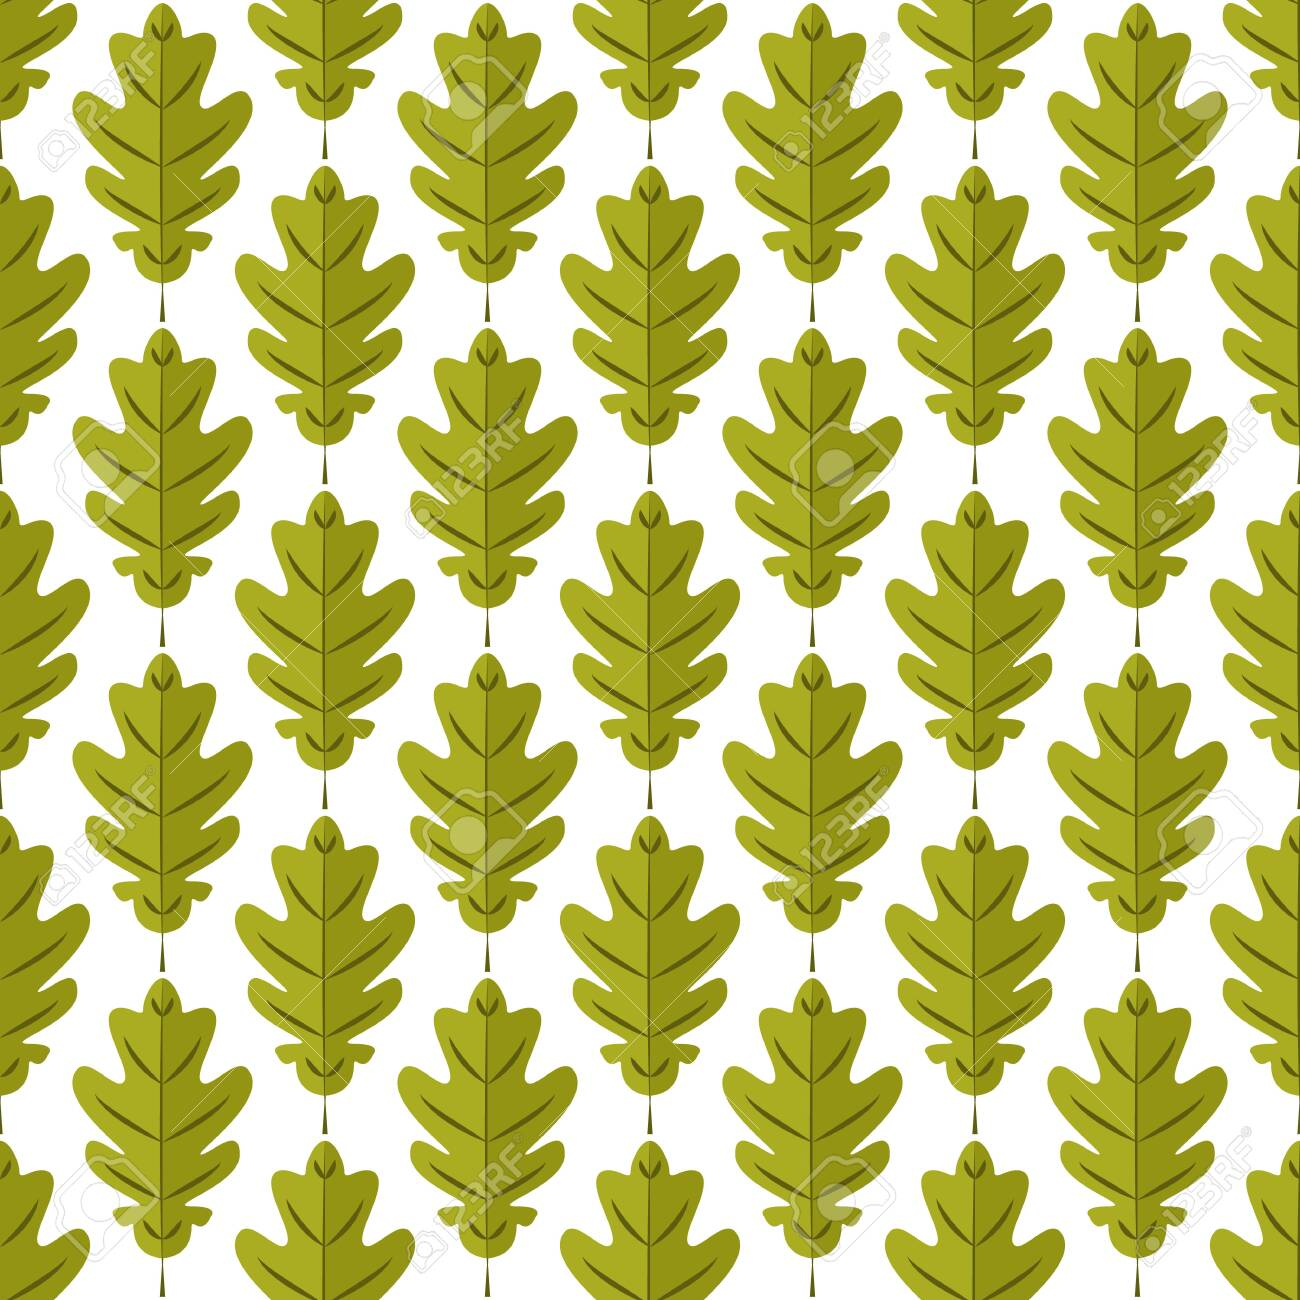 Seamless pattern  Oak leaves on white background  It can be used